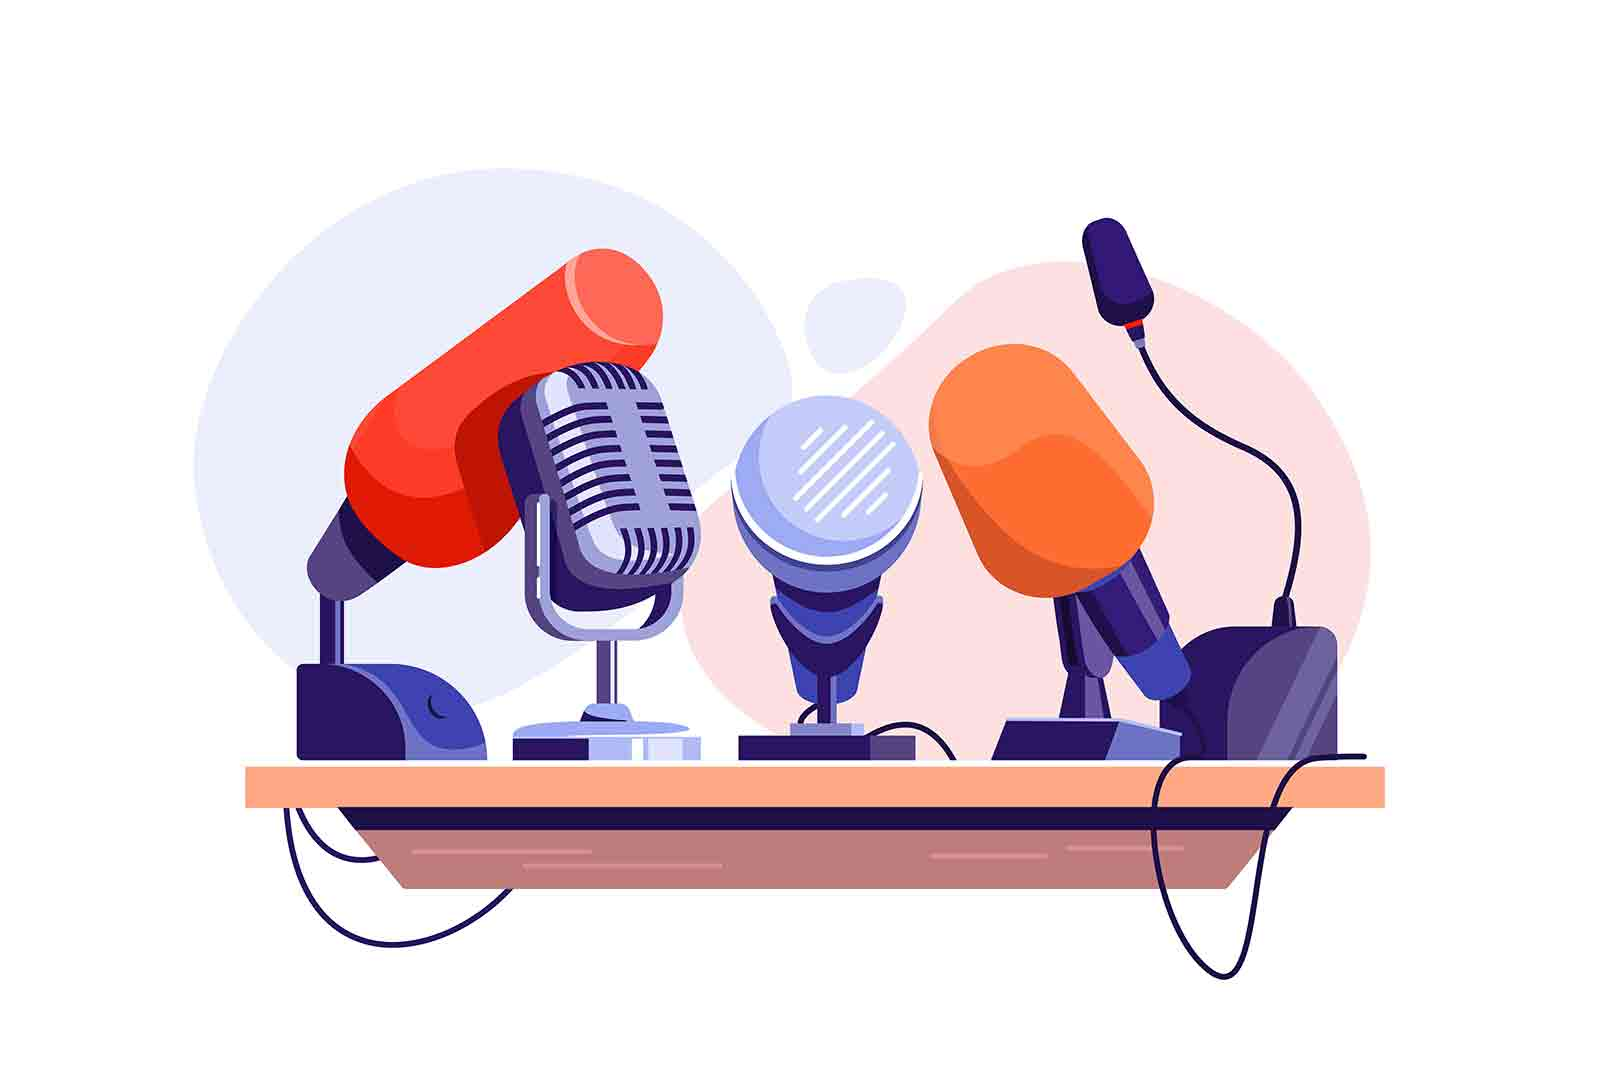 Press conference with microphone on tribune vector illustration. Record human voice flat style. Journalism, interview, public speech concept